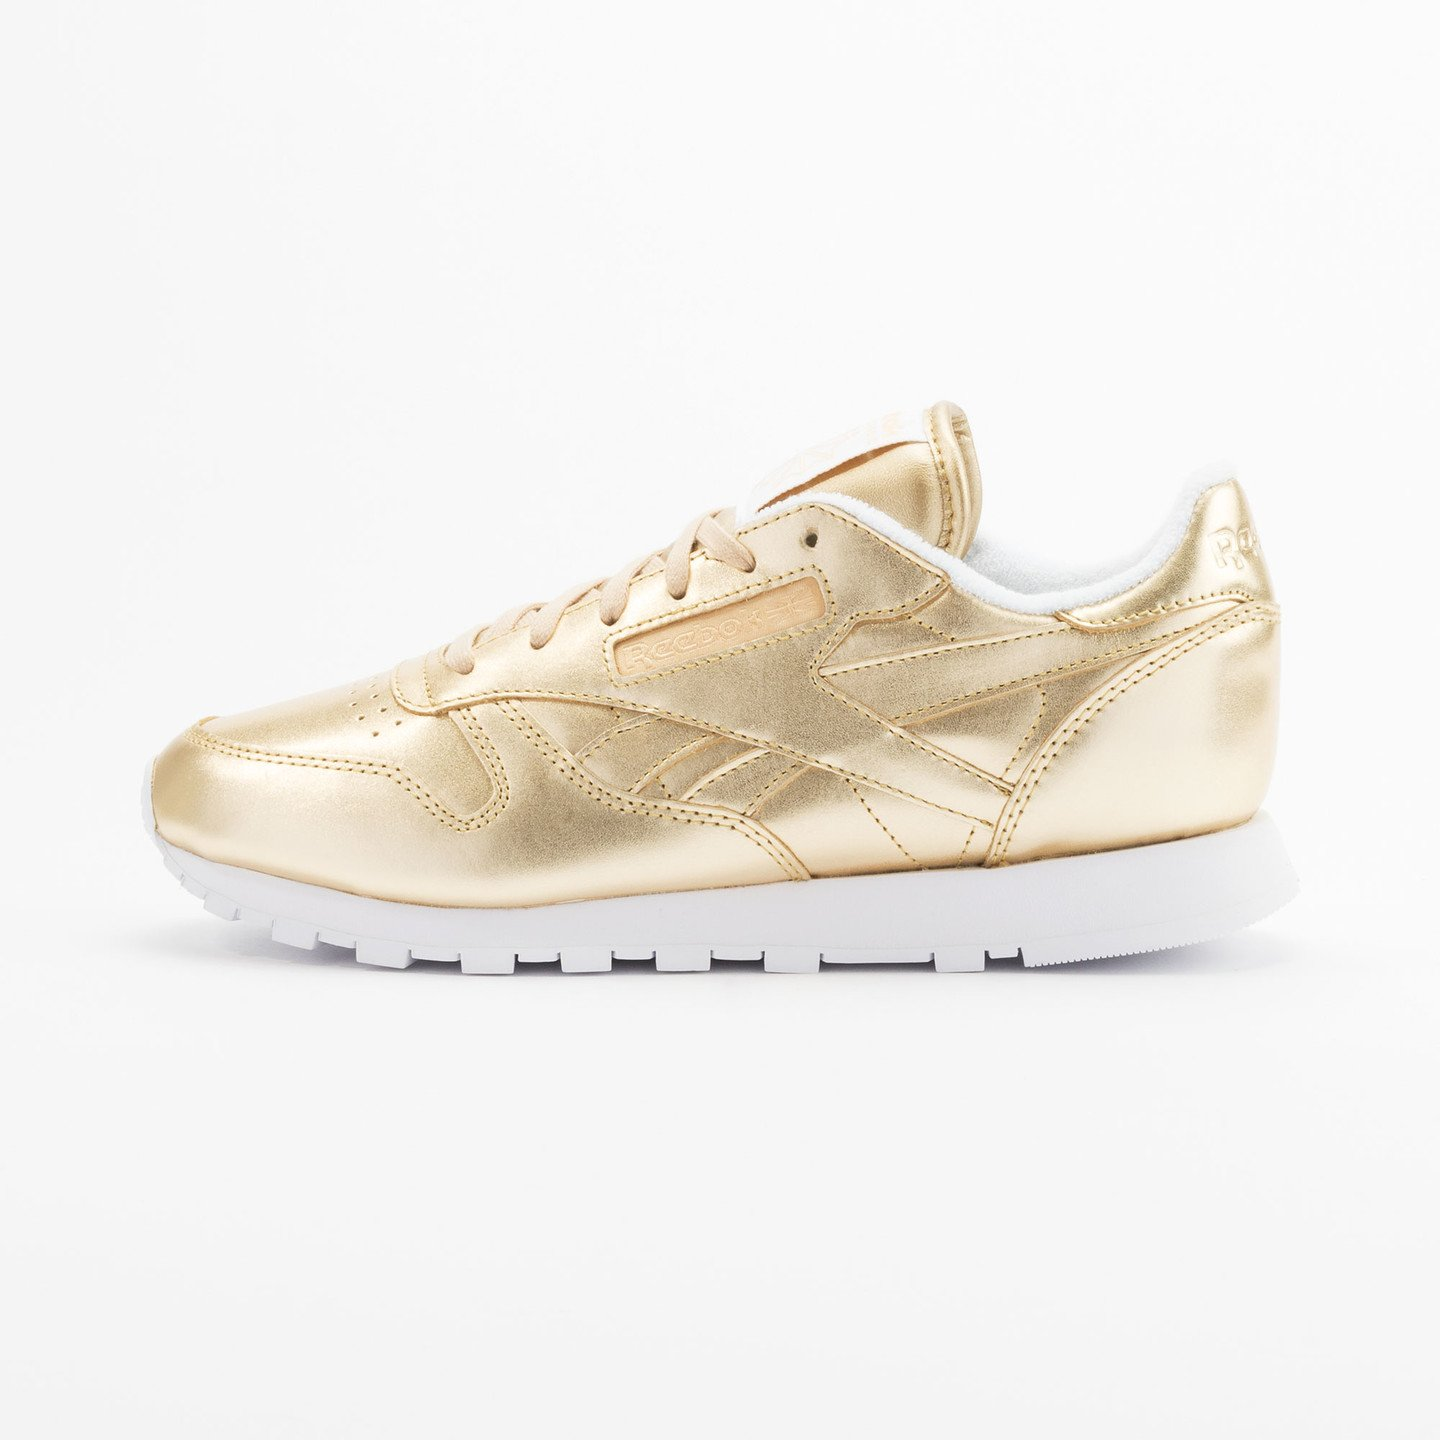 Reebok Classic Leather Spirit Sensation Gold / White V70668-41